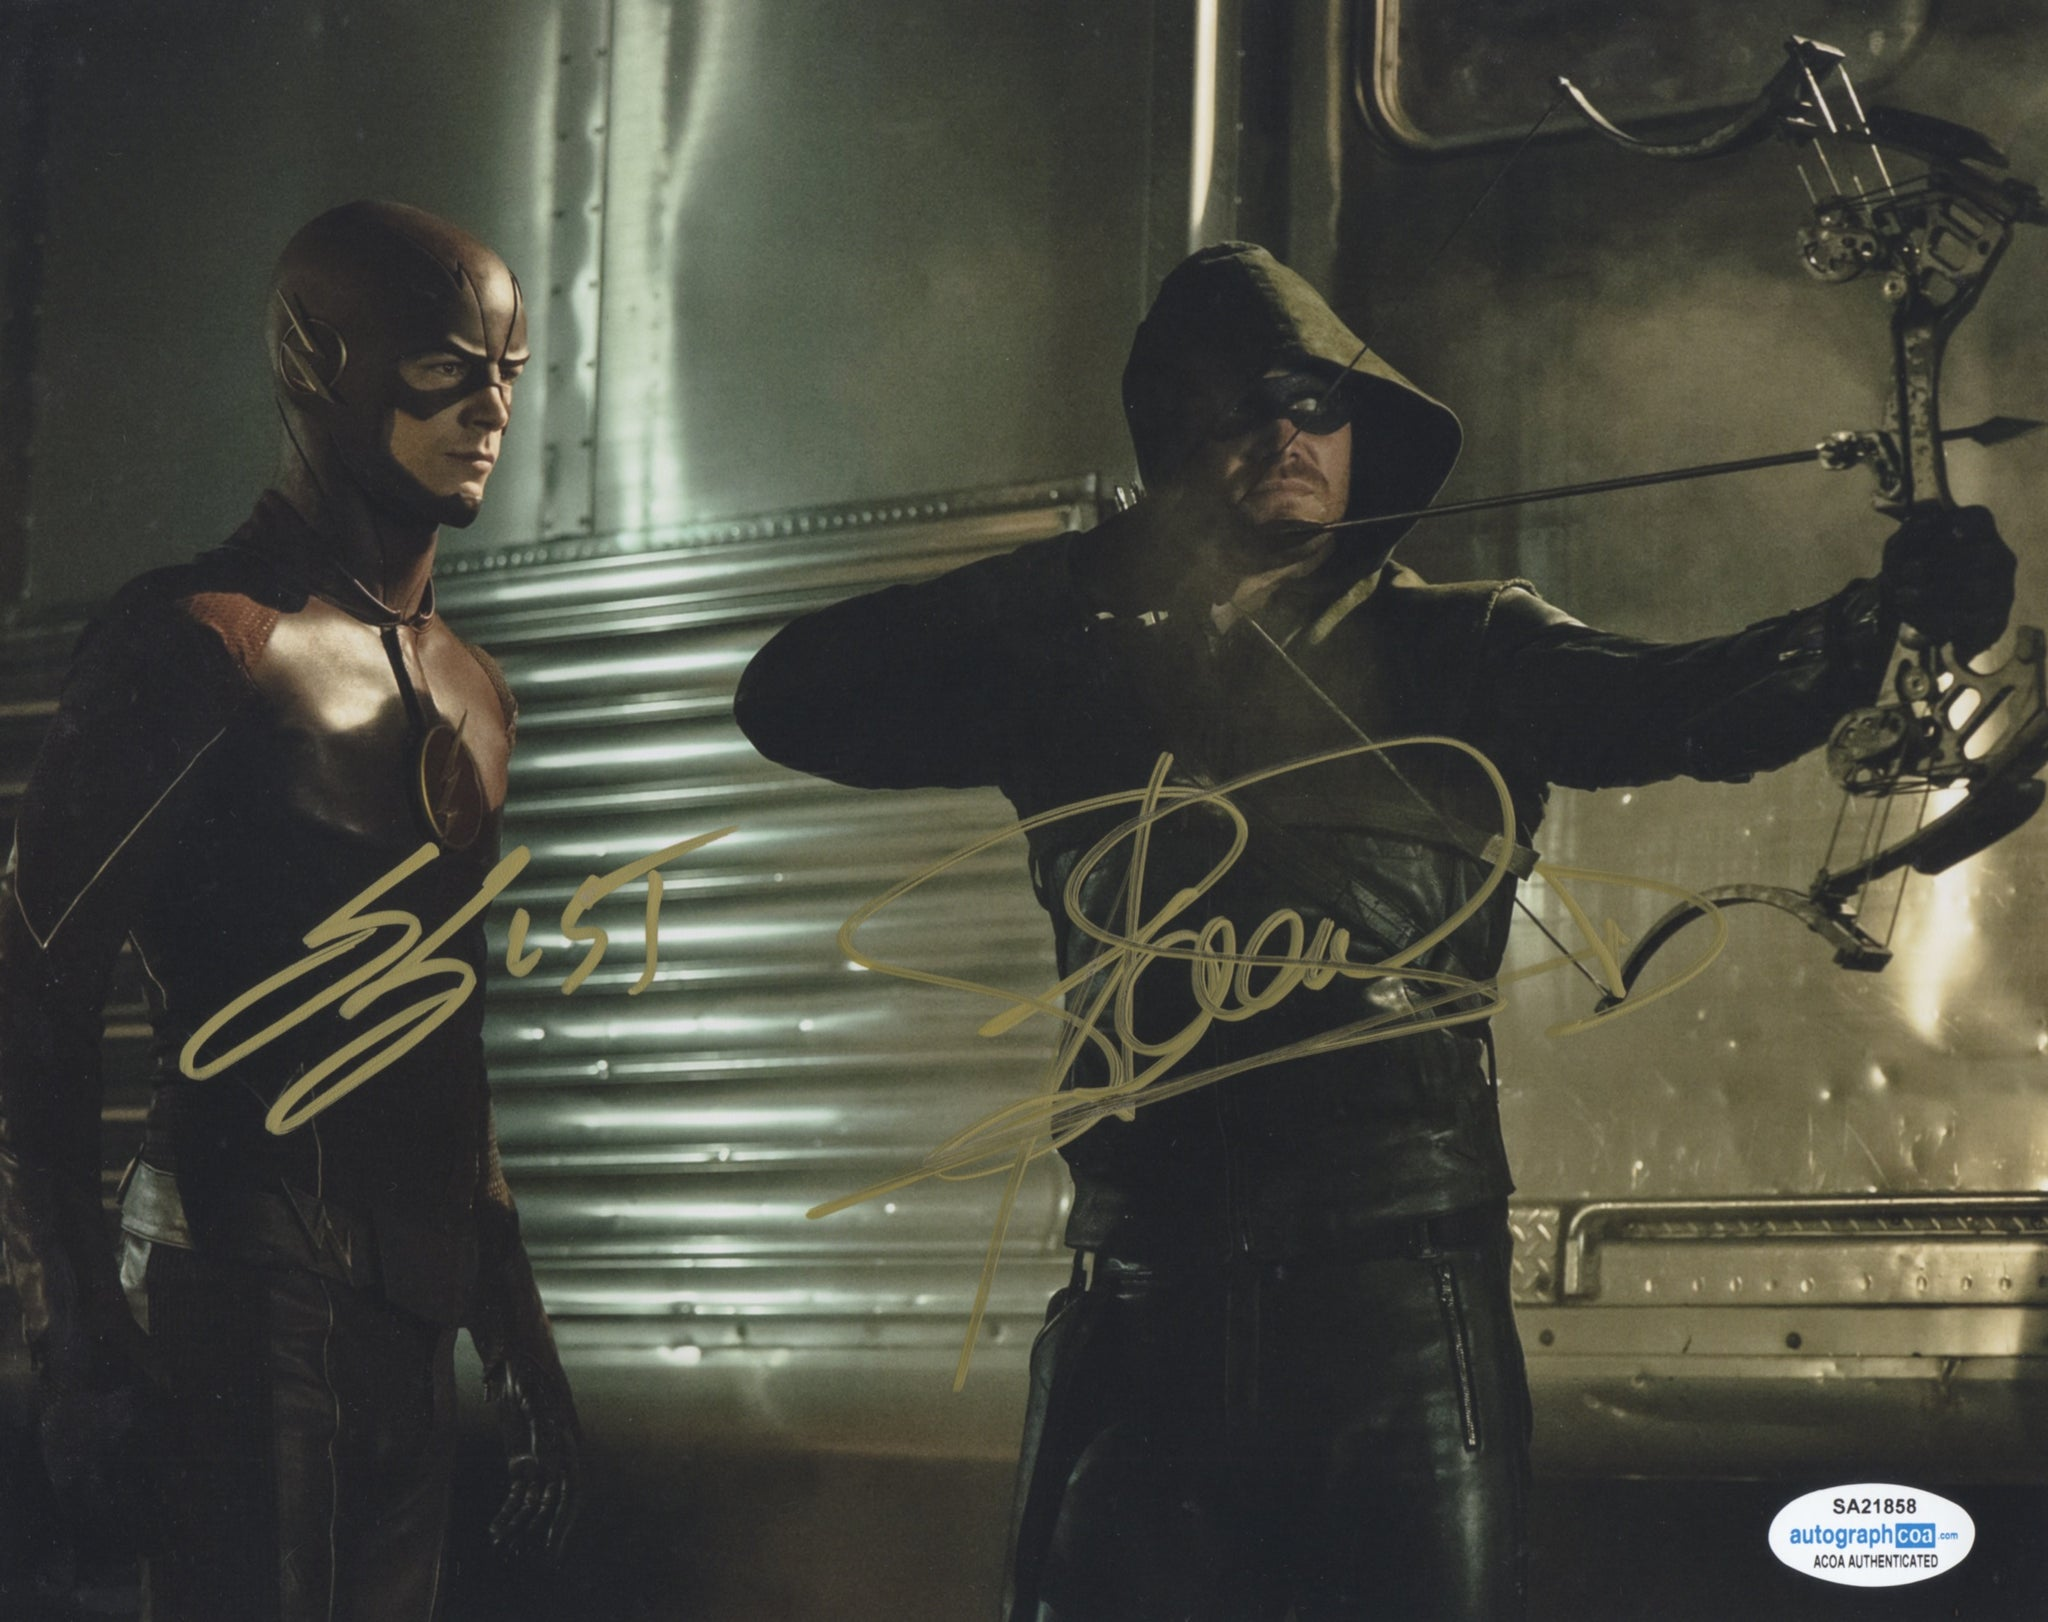 Stephen Amell & Grant Gustin Flarrow Flash Arrow Signed Autograph 8x10 Photo ACOA #2 - Outlaw Hobbies Authentic Autographs